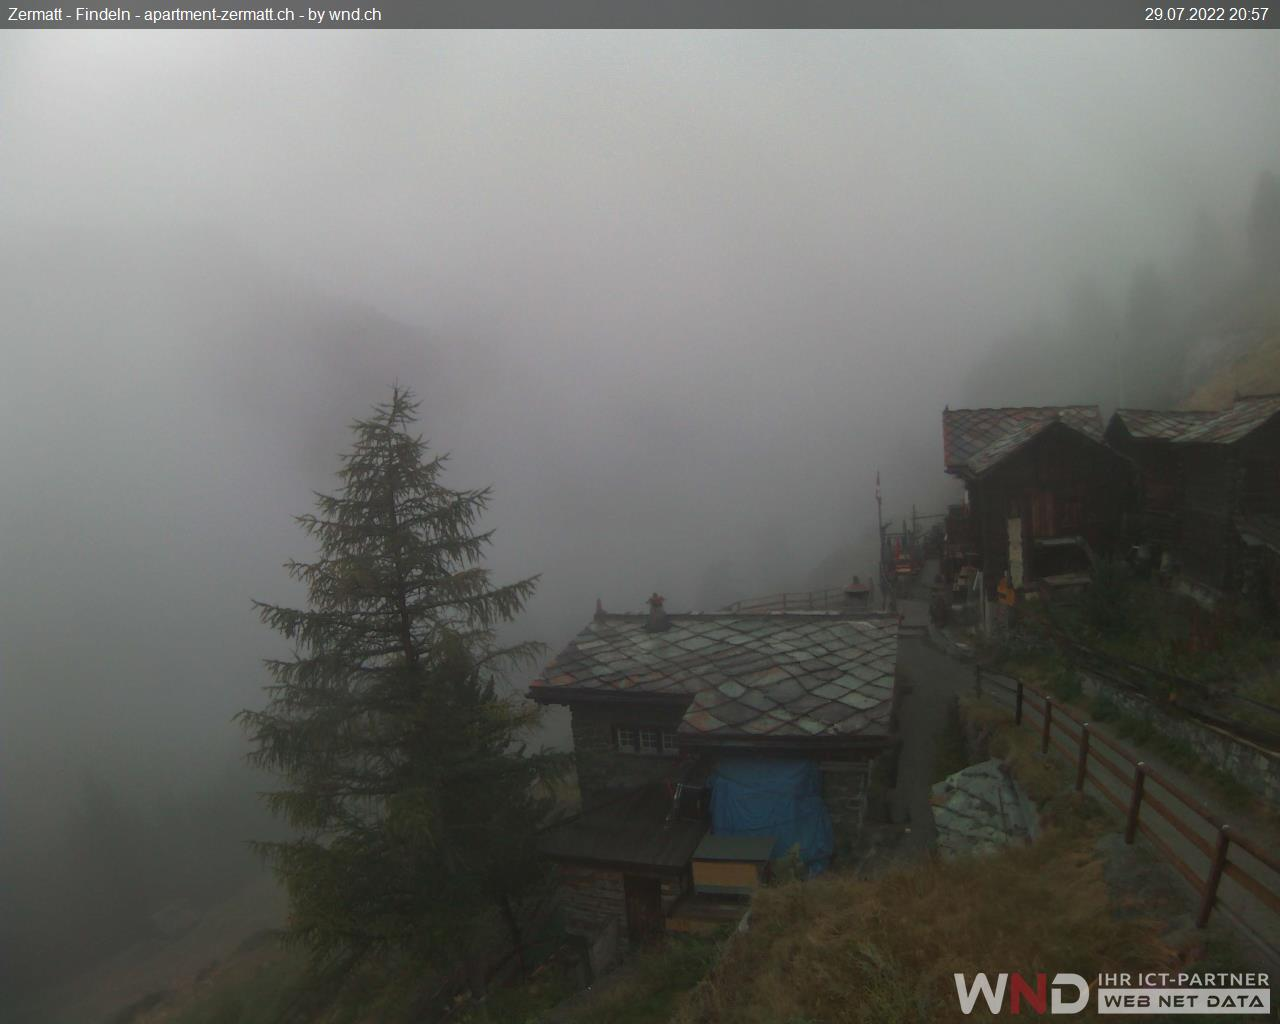 Webcam Findeln Zermatt